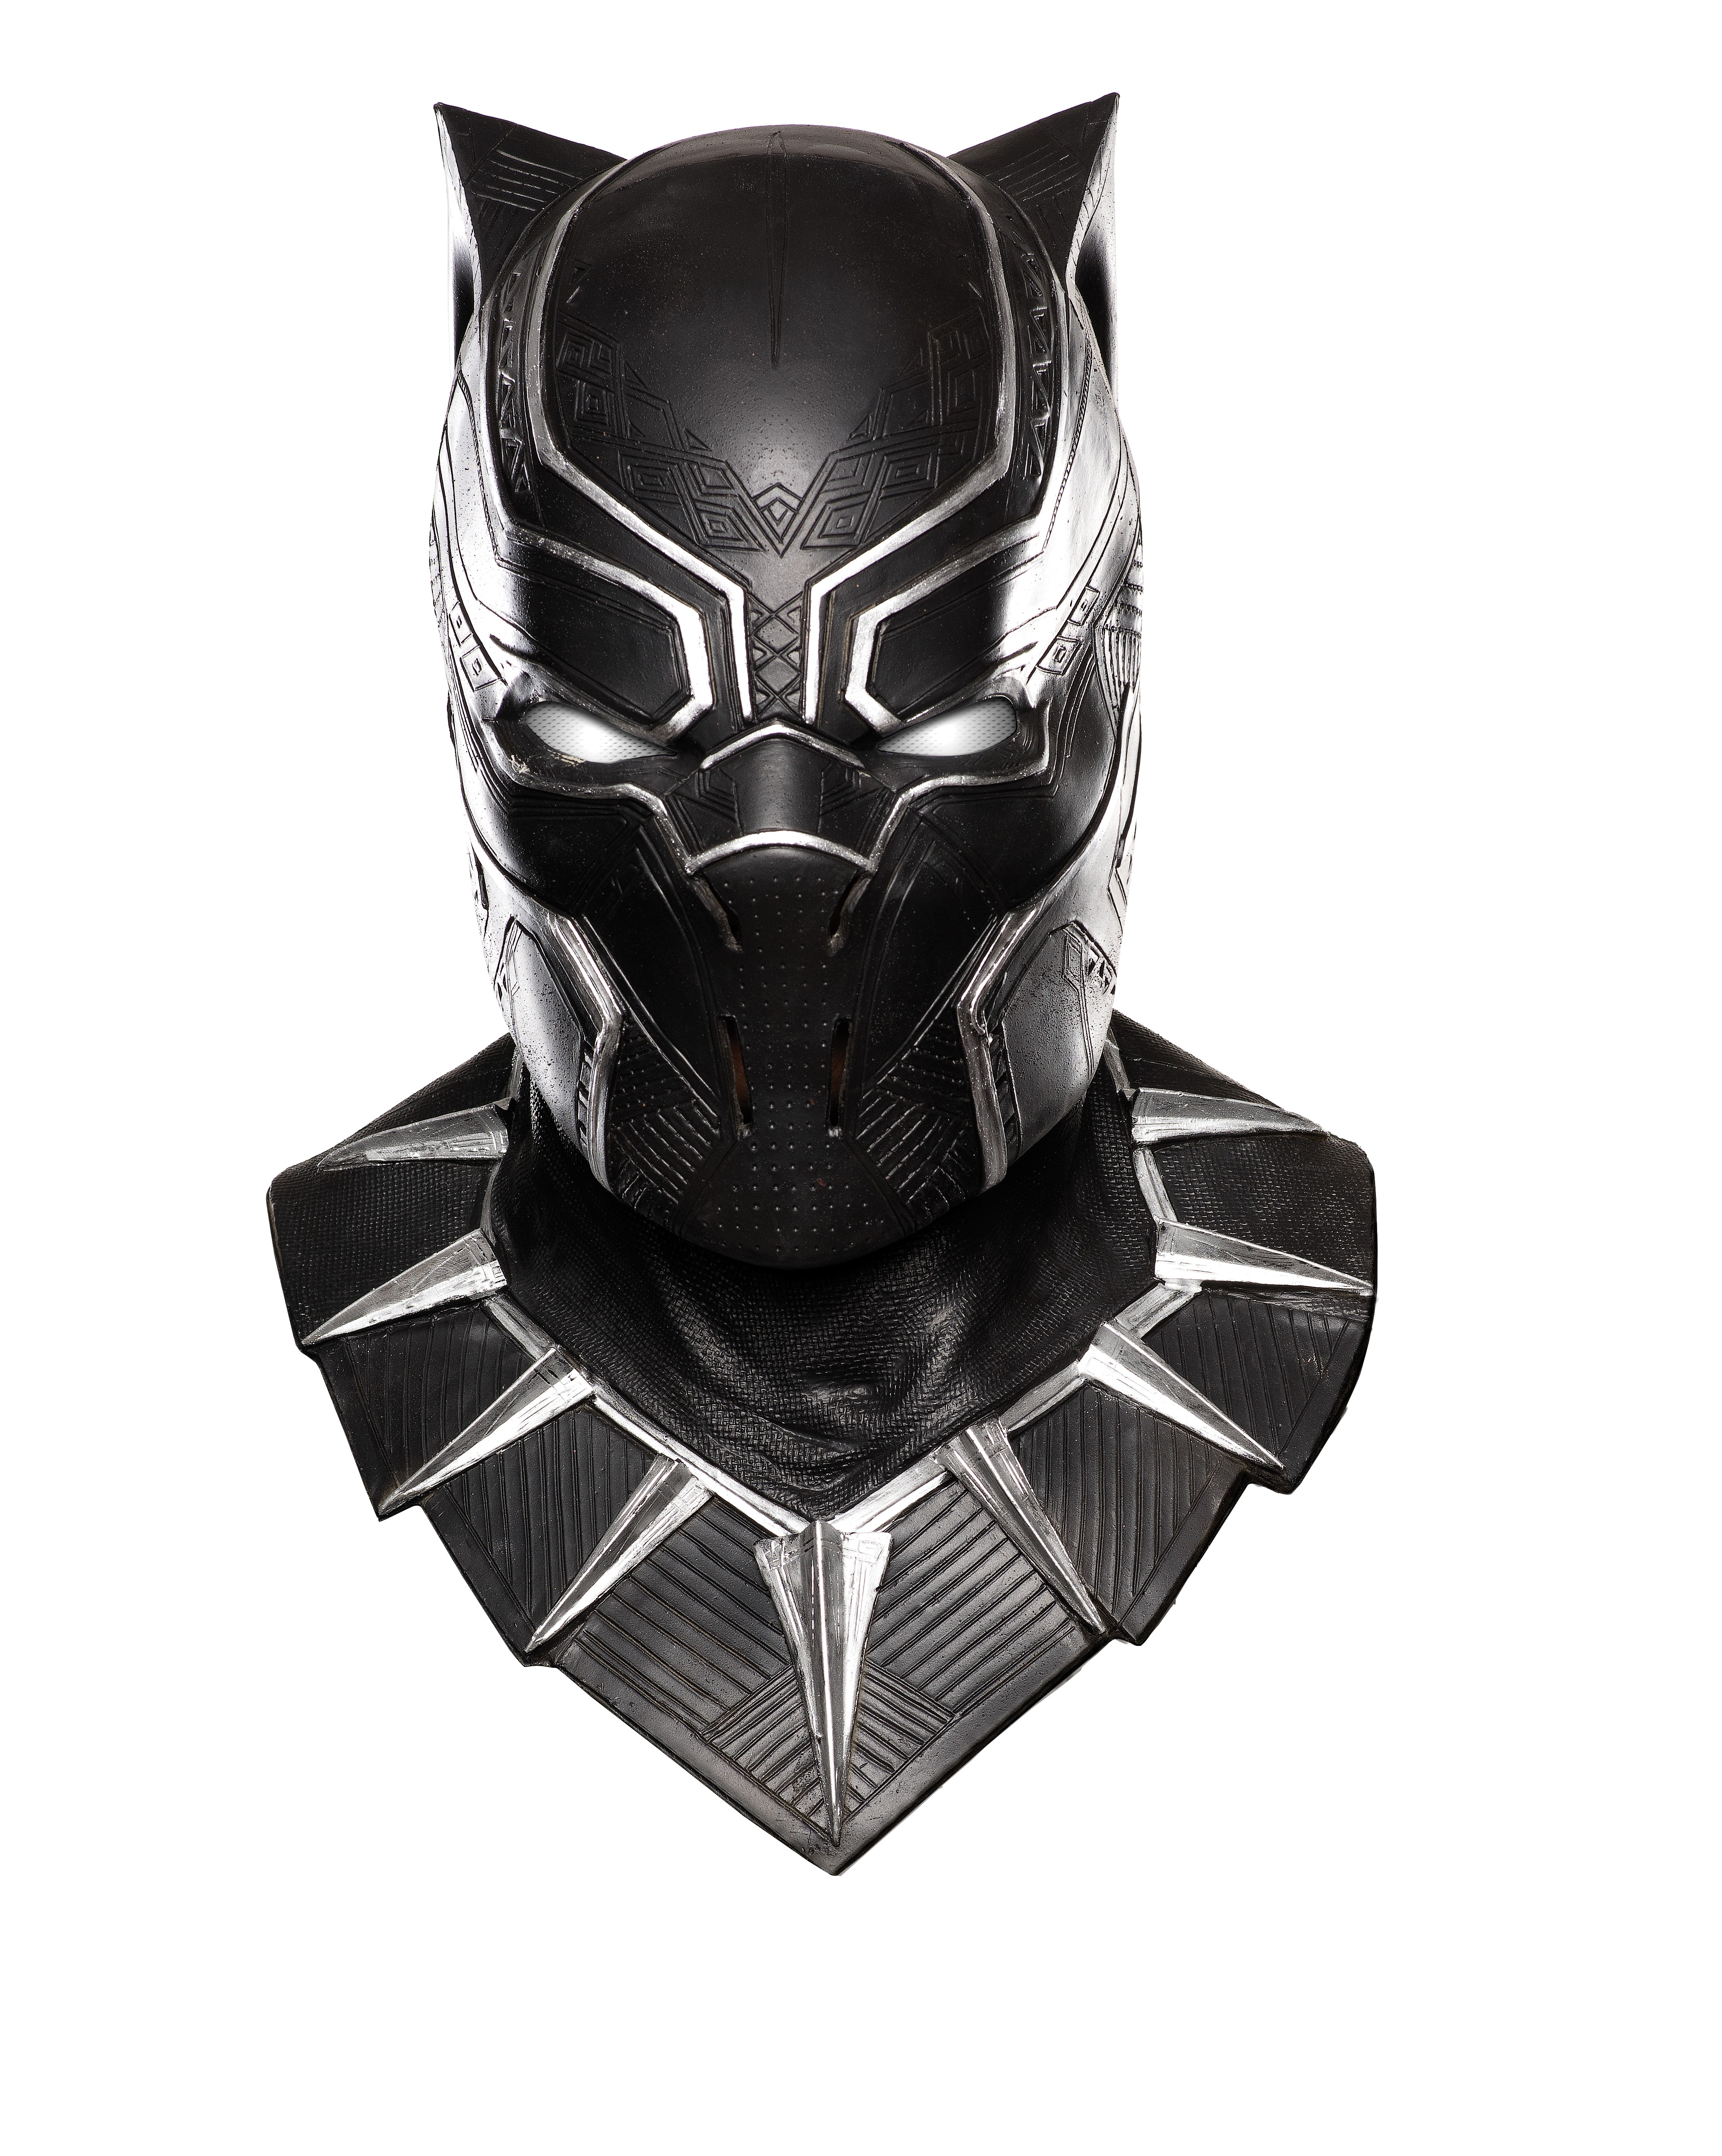 Black Panther Mask Png - Black Panther Mask Png (65+ images in Collection) Page 1